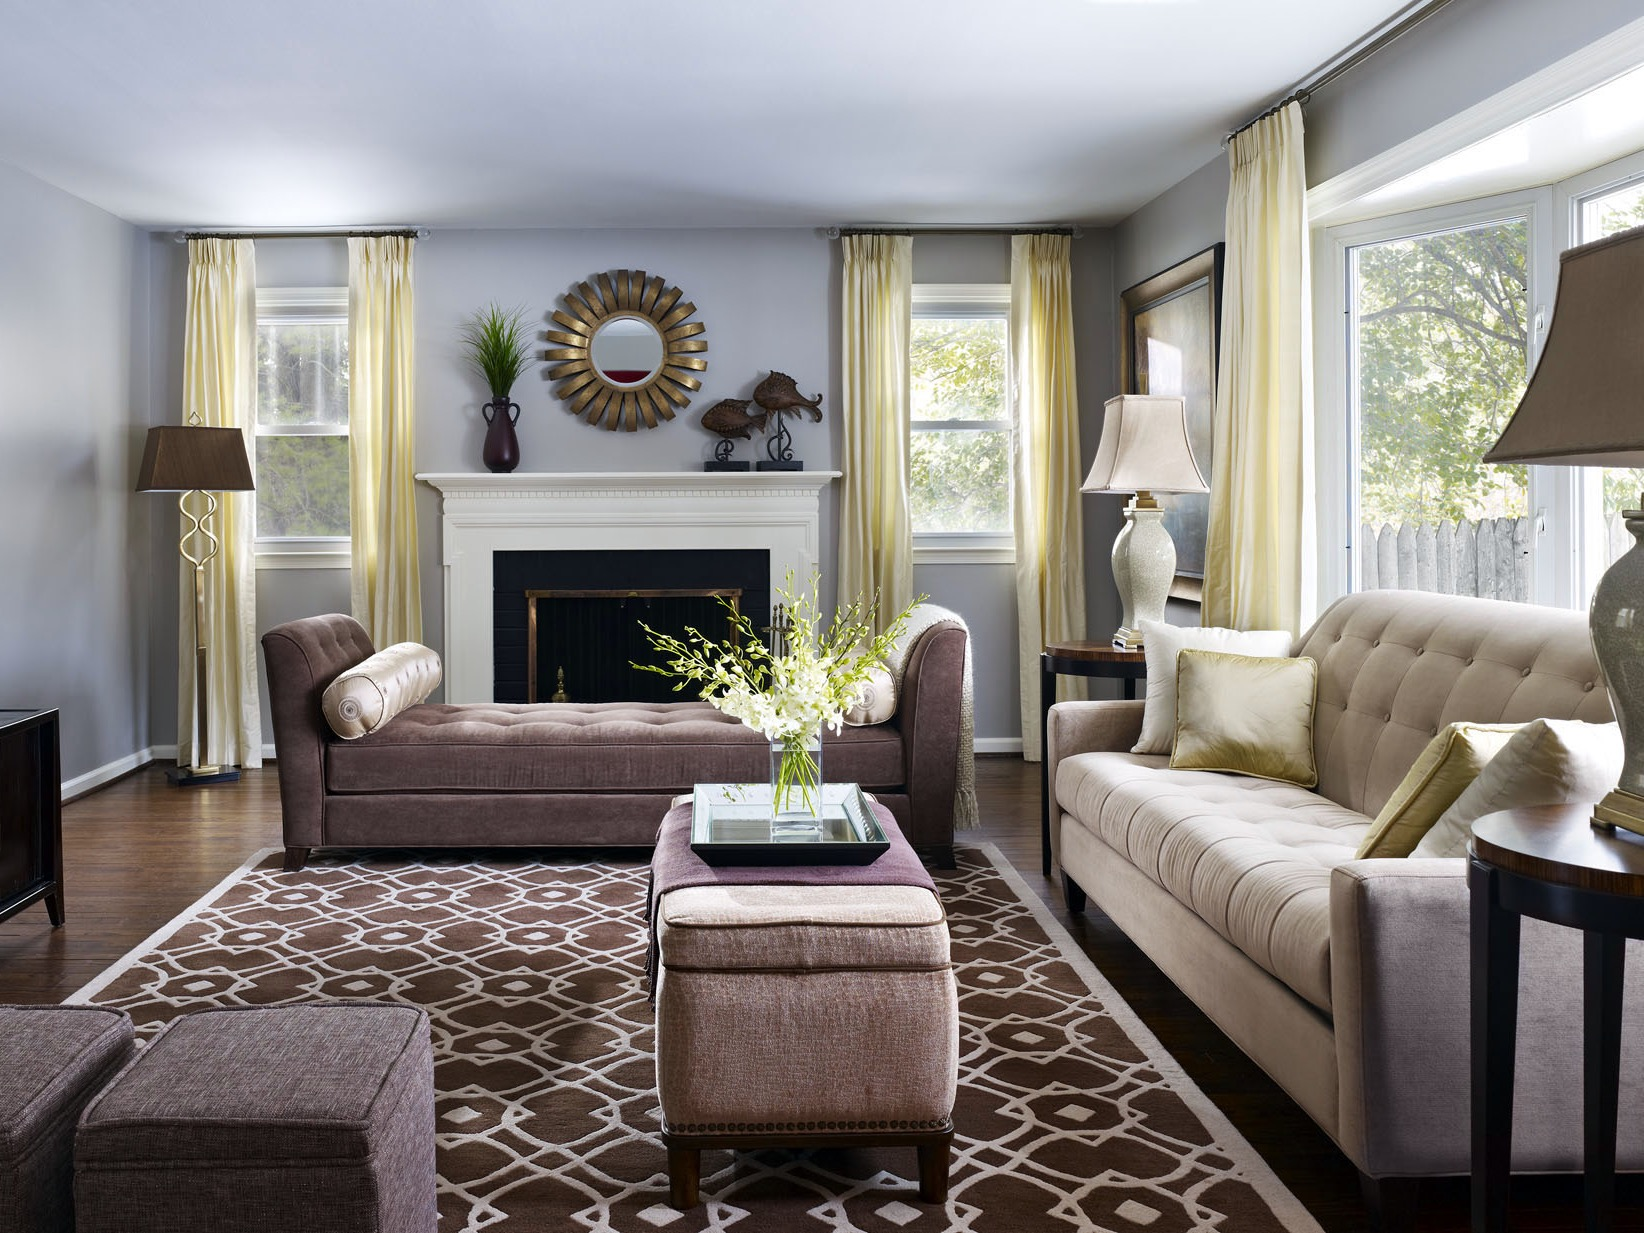 Sophisticated Neutral Furnishing For Classic Living Room  (Image 18 of 24)